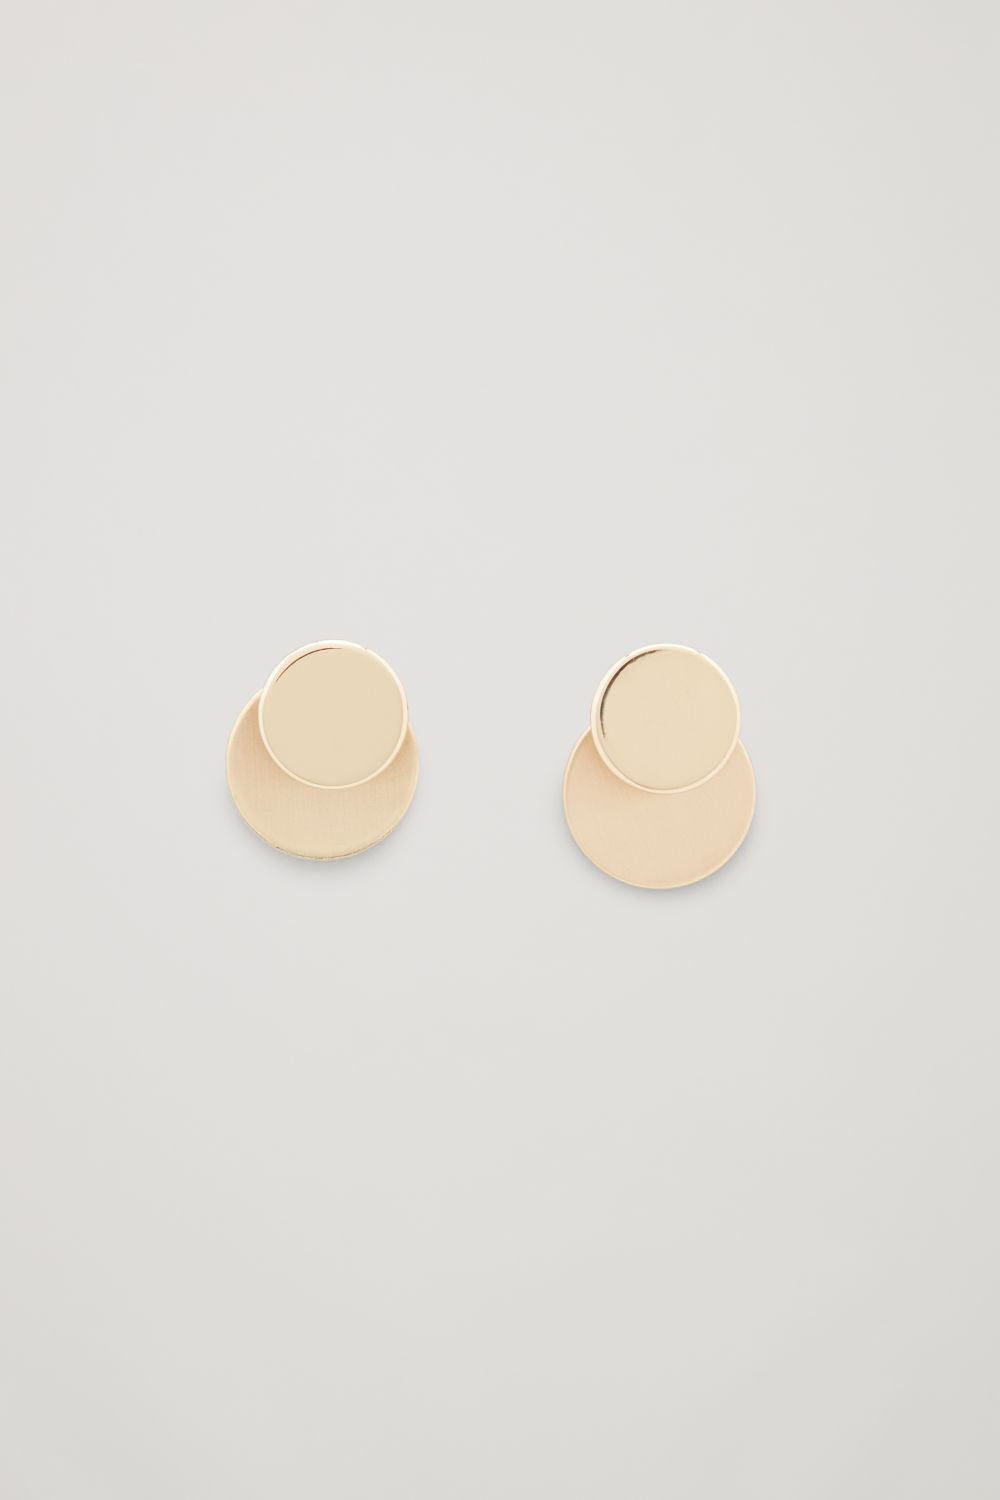 DOUBLE-DISC STUD EARRINGS